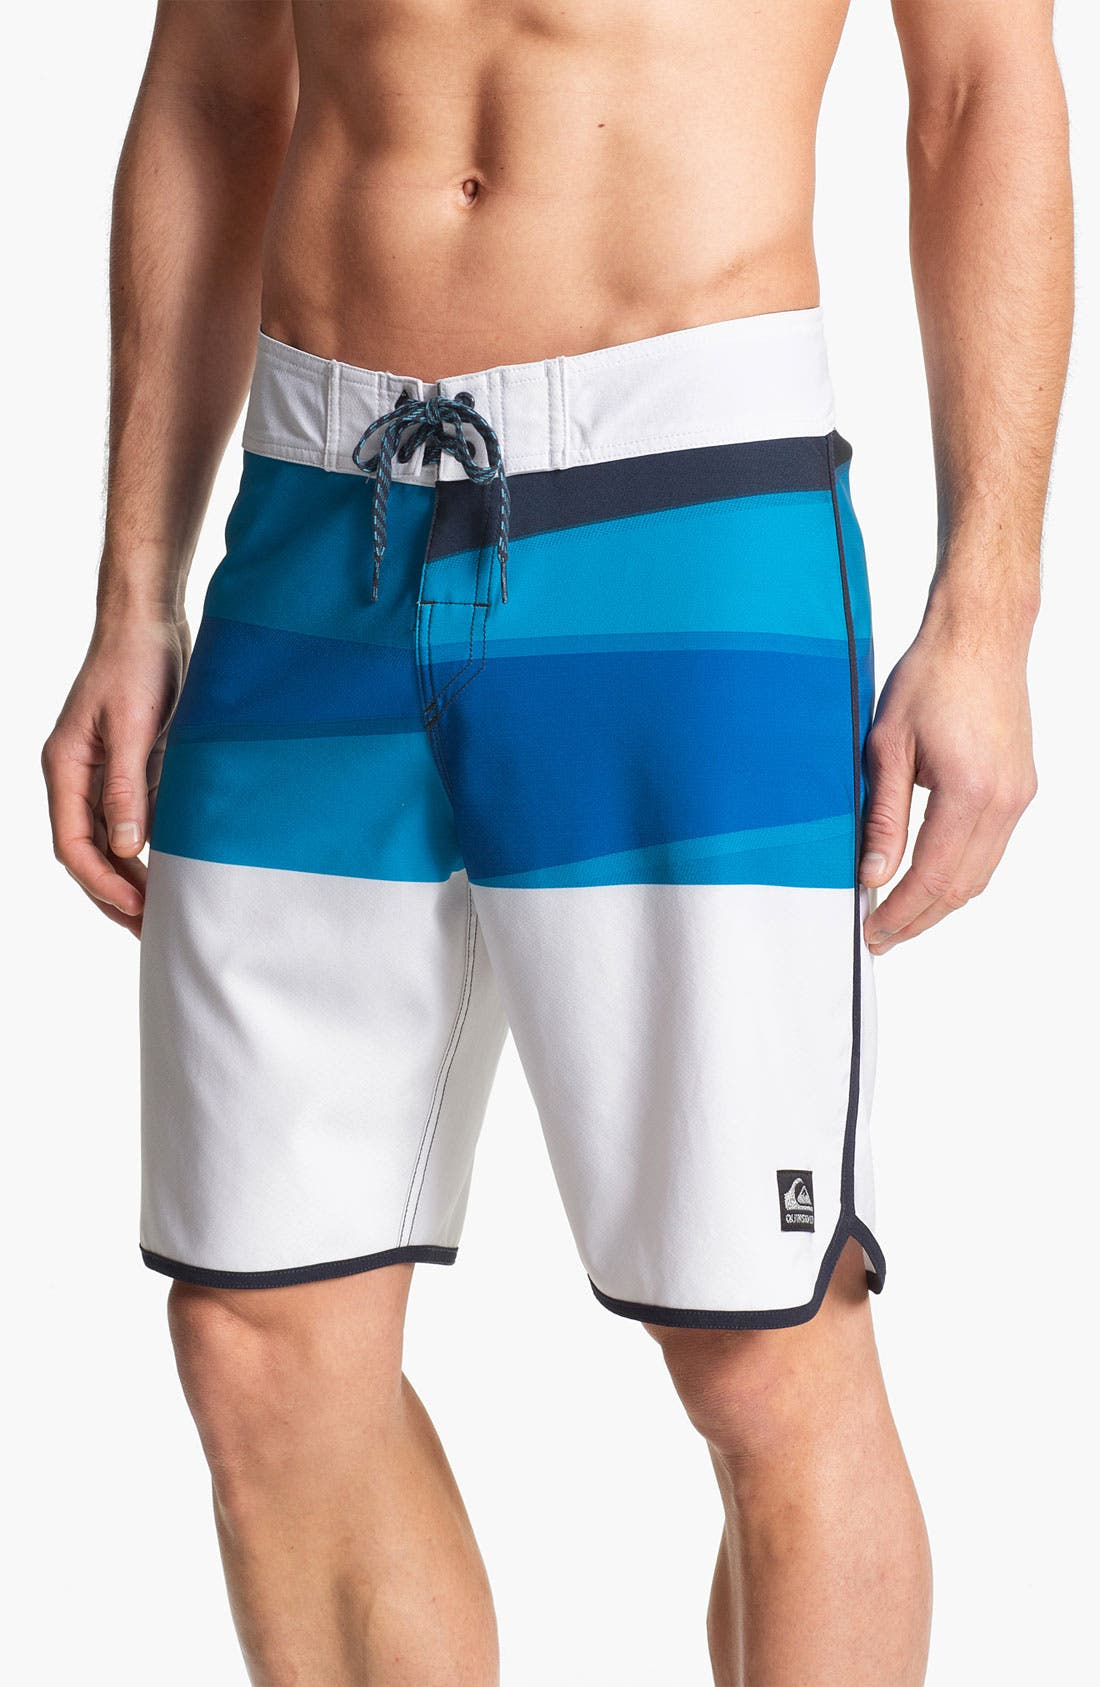 Alternate Image 1 Selected - Quiksilver 'Repel' Board Shorts